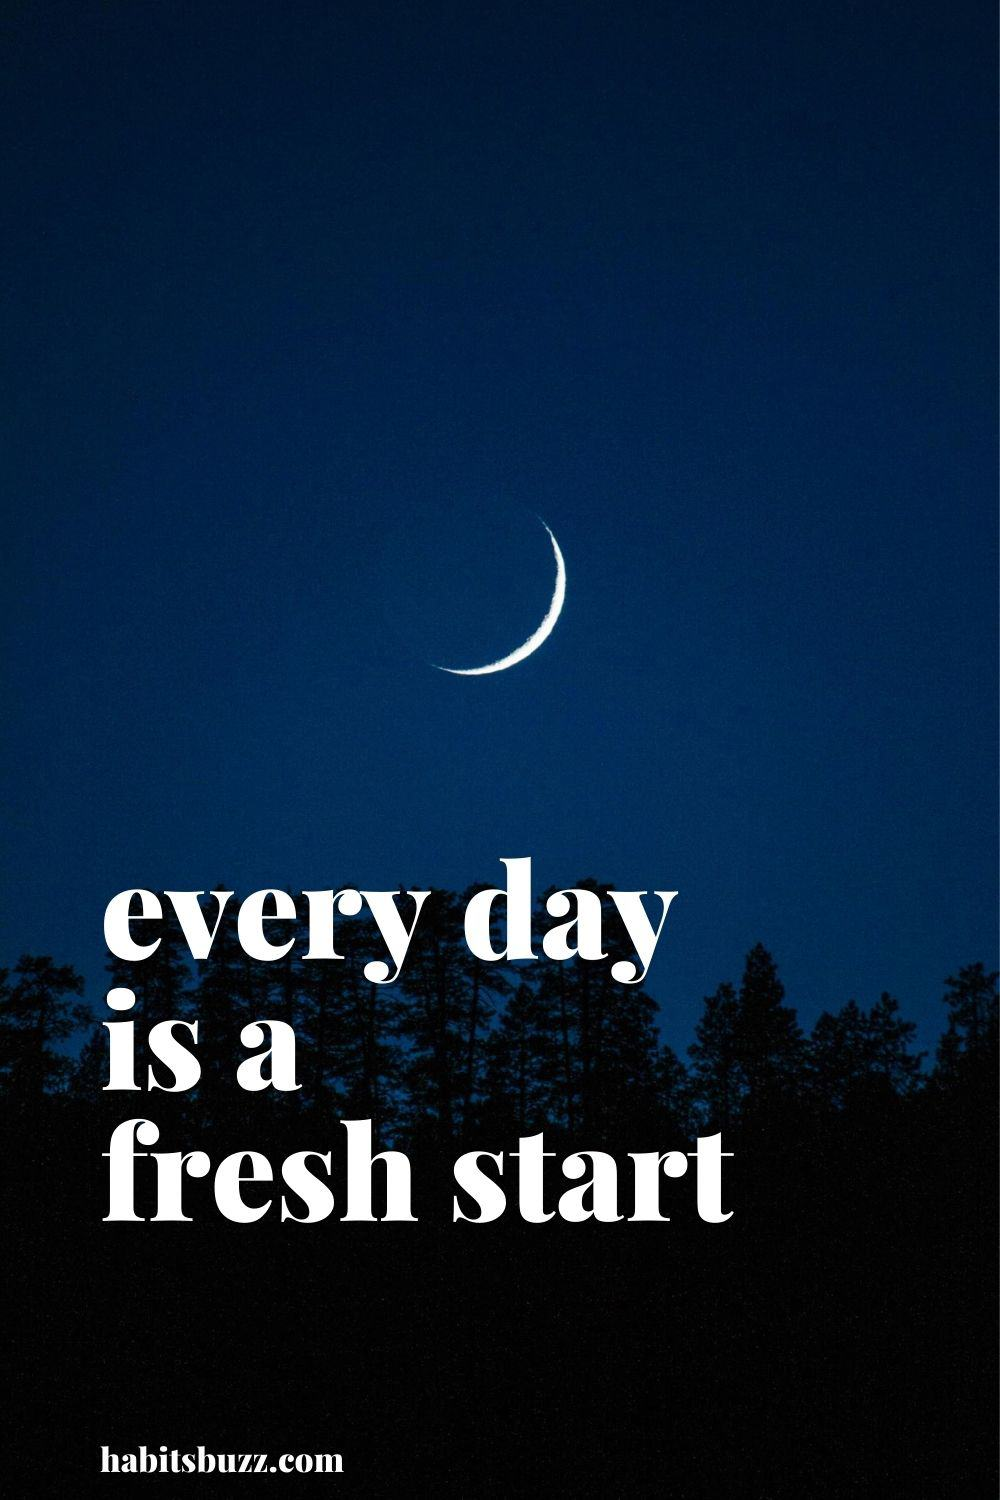 every day is a fresh start - mantras to get through bad days in life